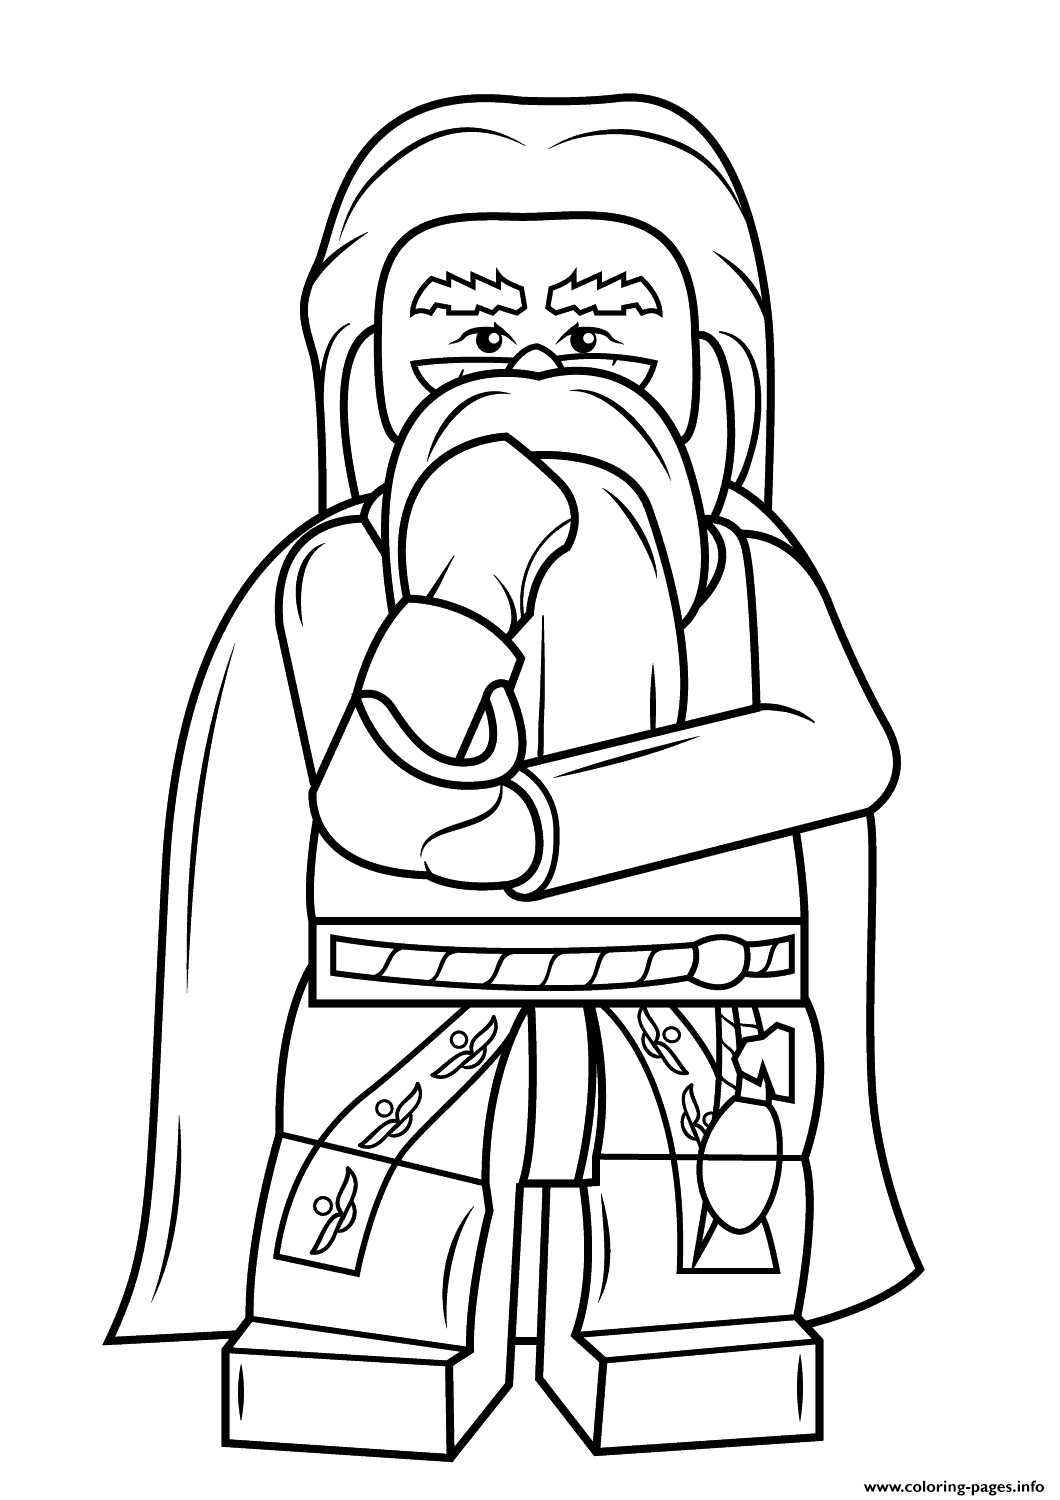 1060x1500 Lego Albus Dumbledore Harry Potter Coloring Pages Printable